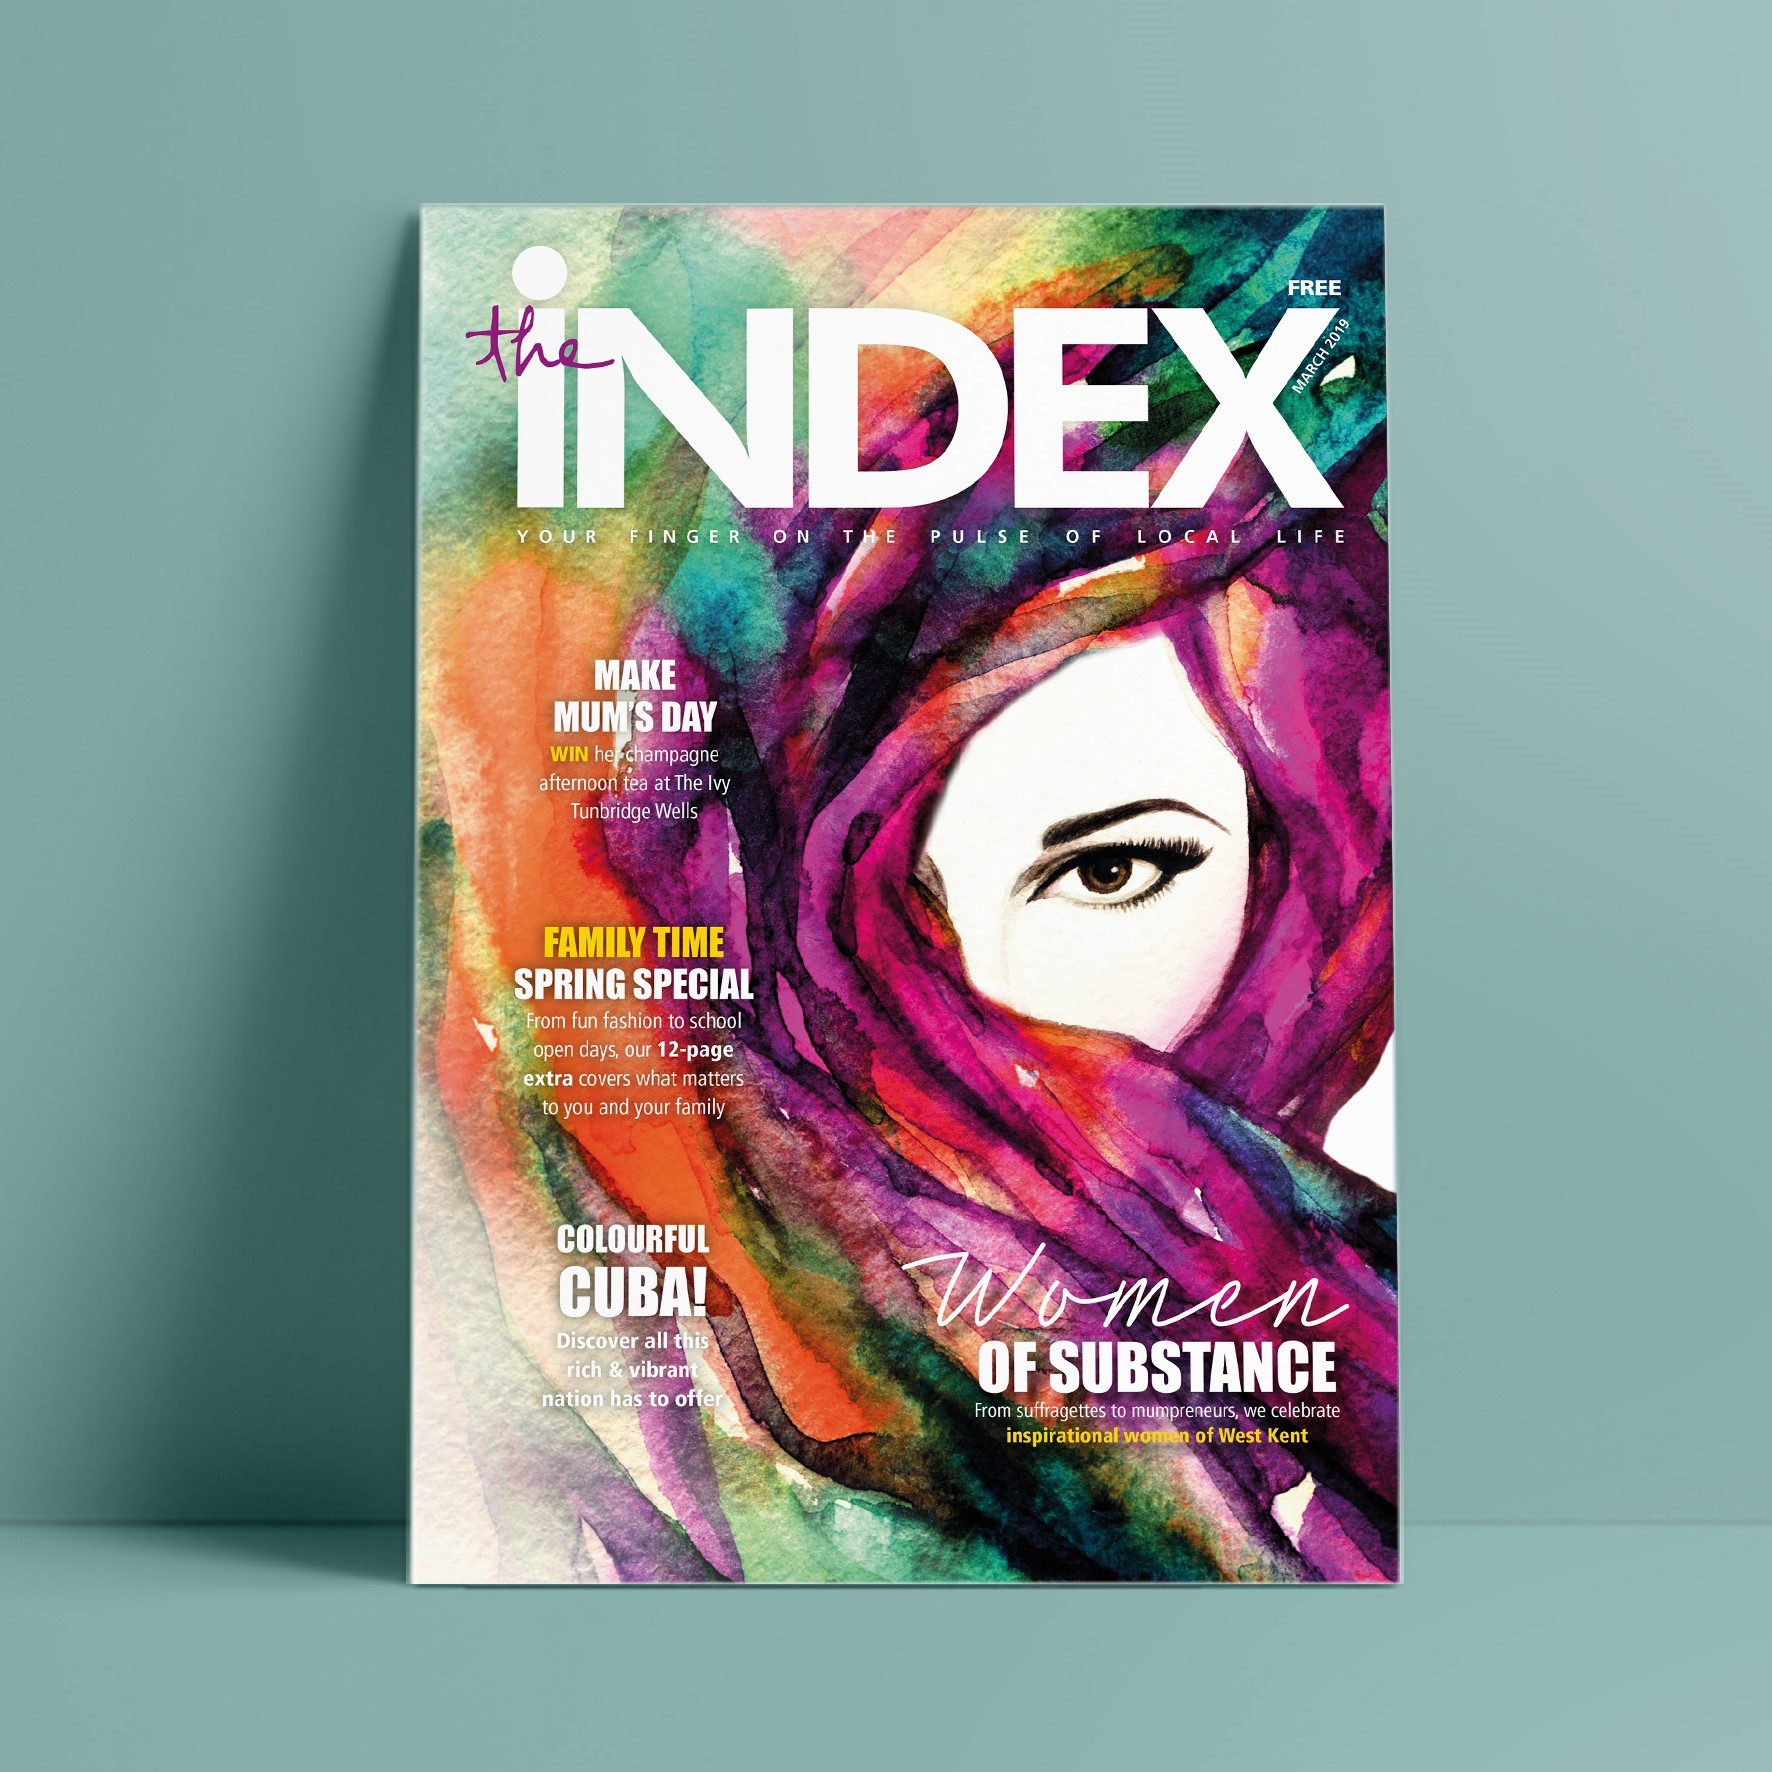 Image for The INDEX Magazine - March 2019